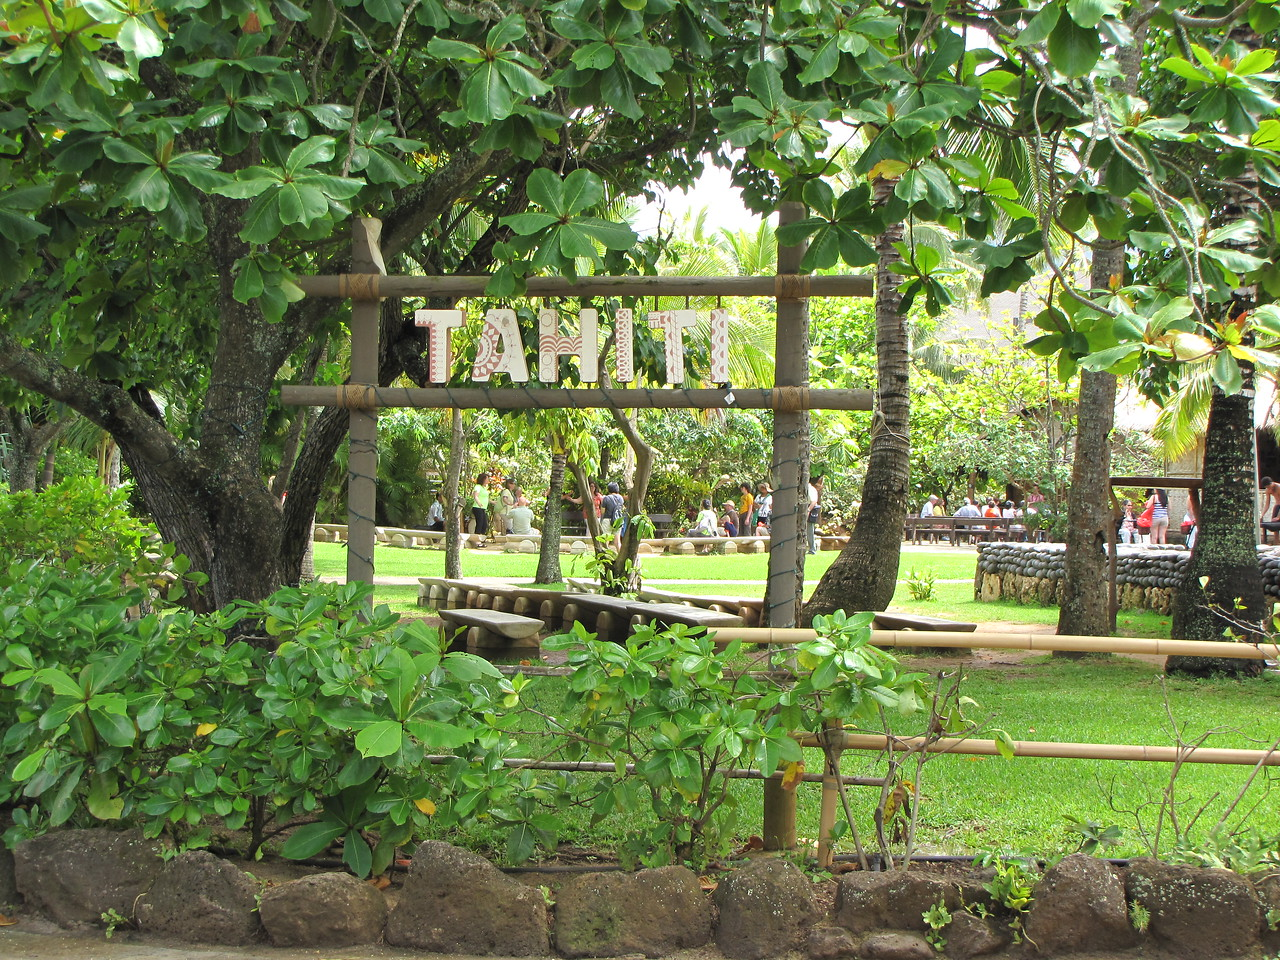 Tahiti village